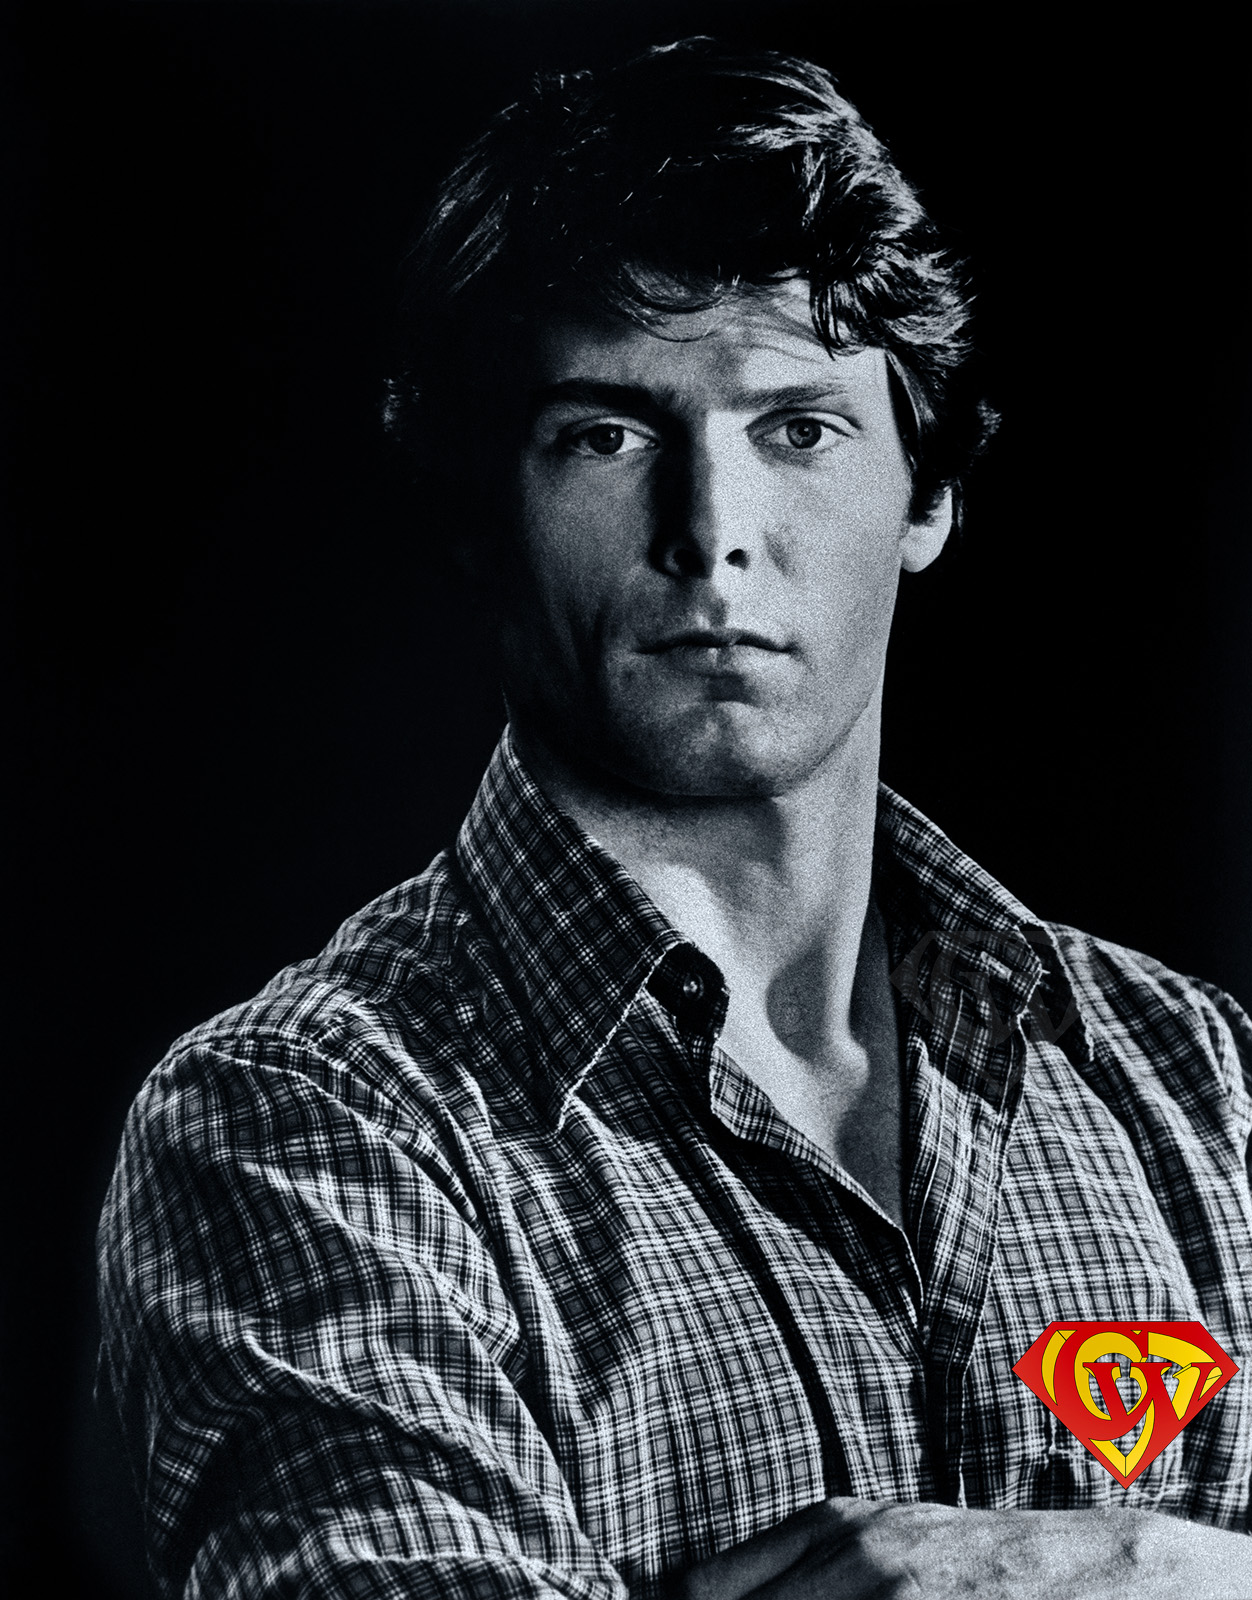 A 1977 portrait of Christopher Reeve by Bob Penn.